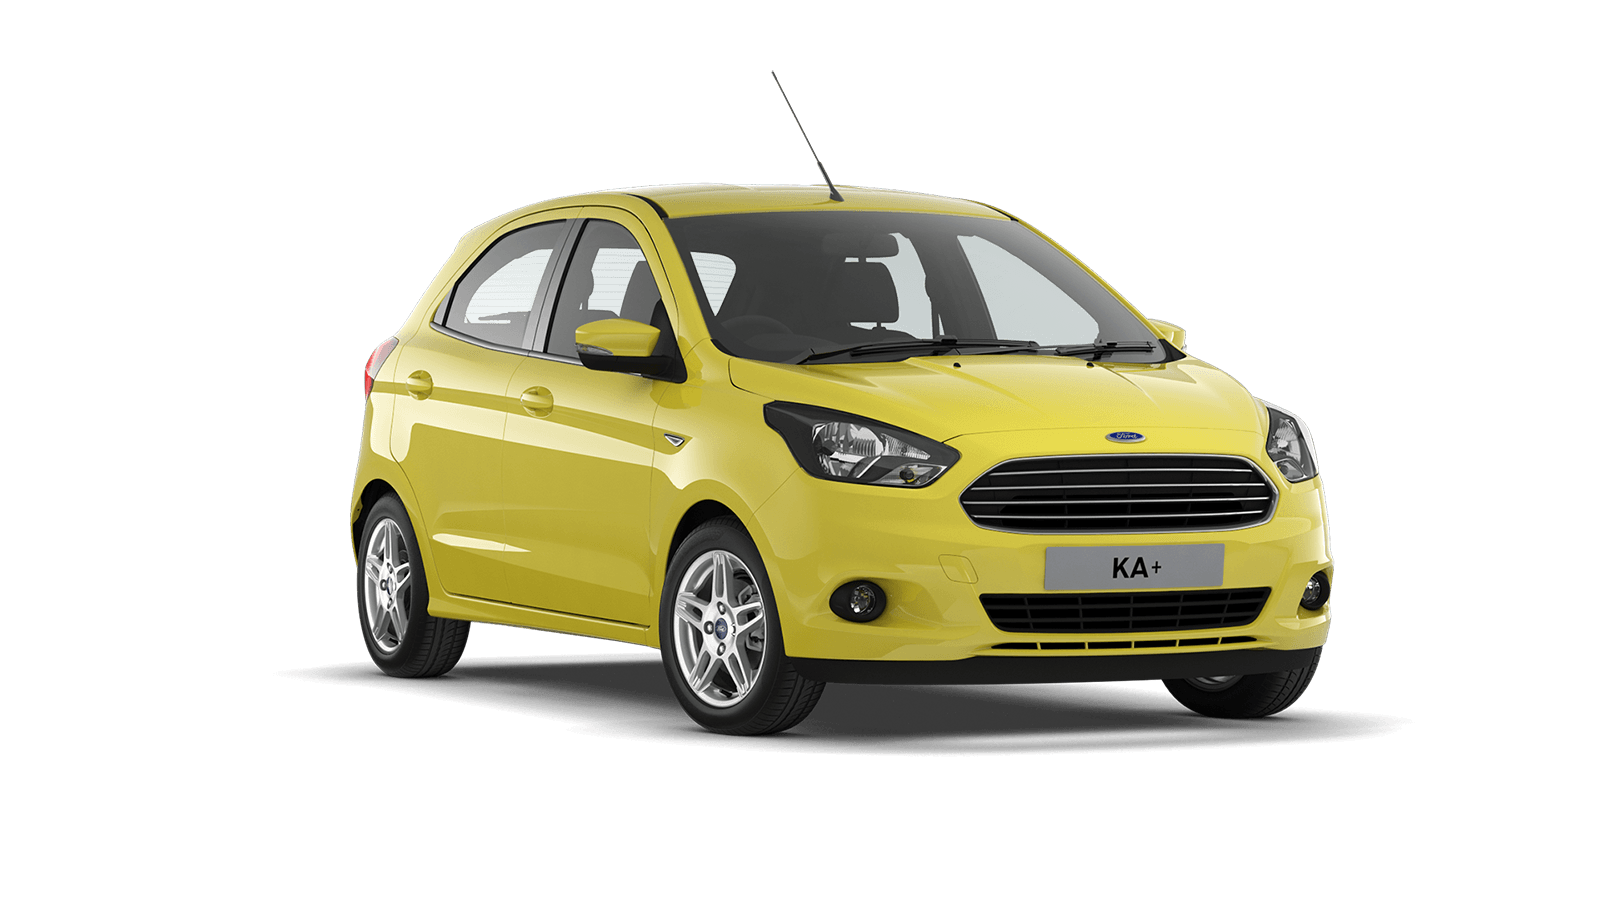 Ford ka plus png. Clipart car yellow